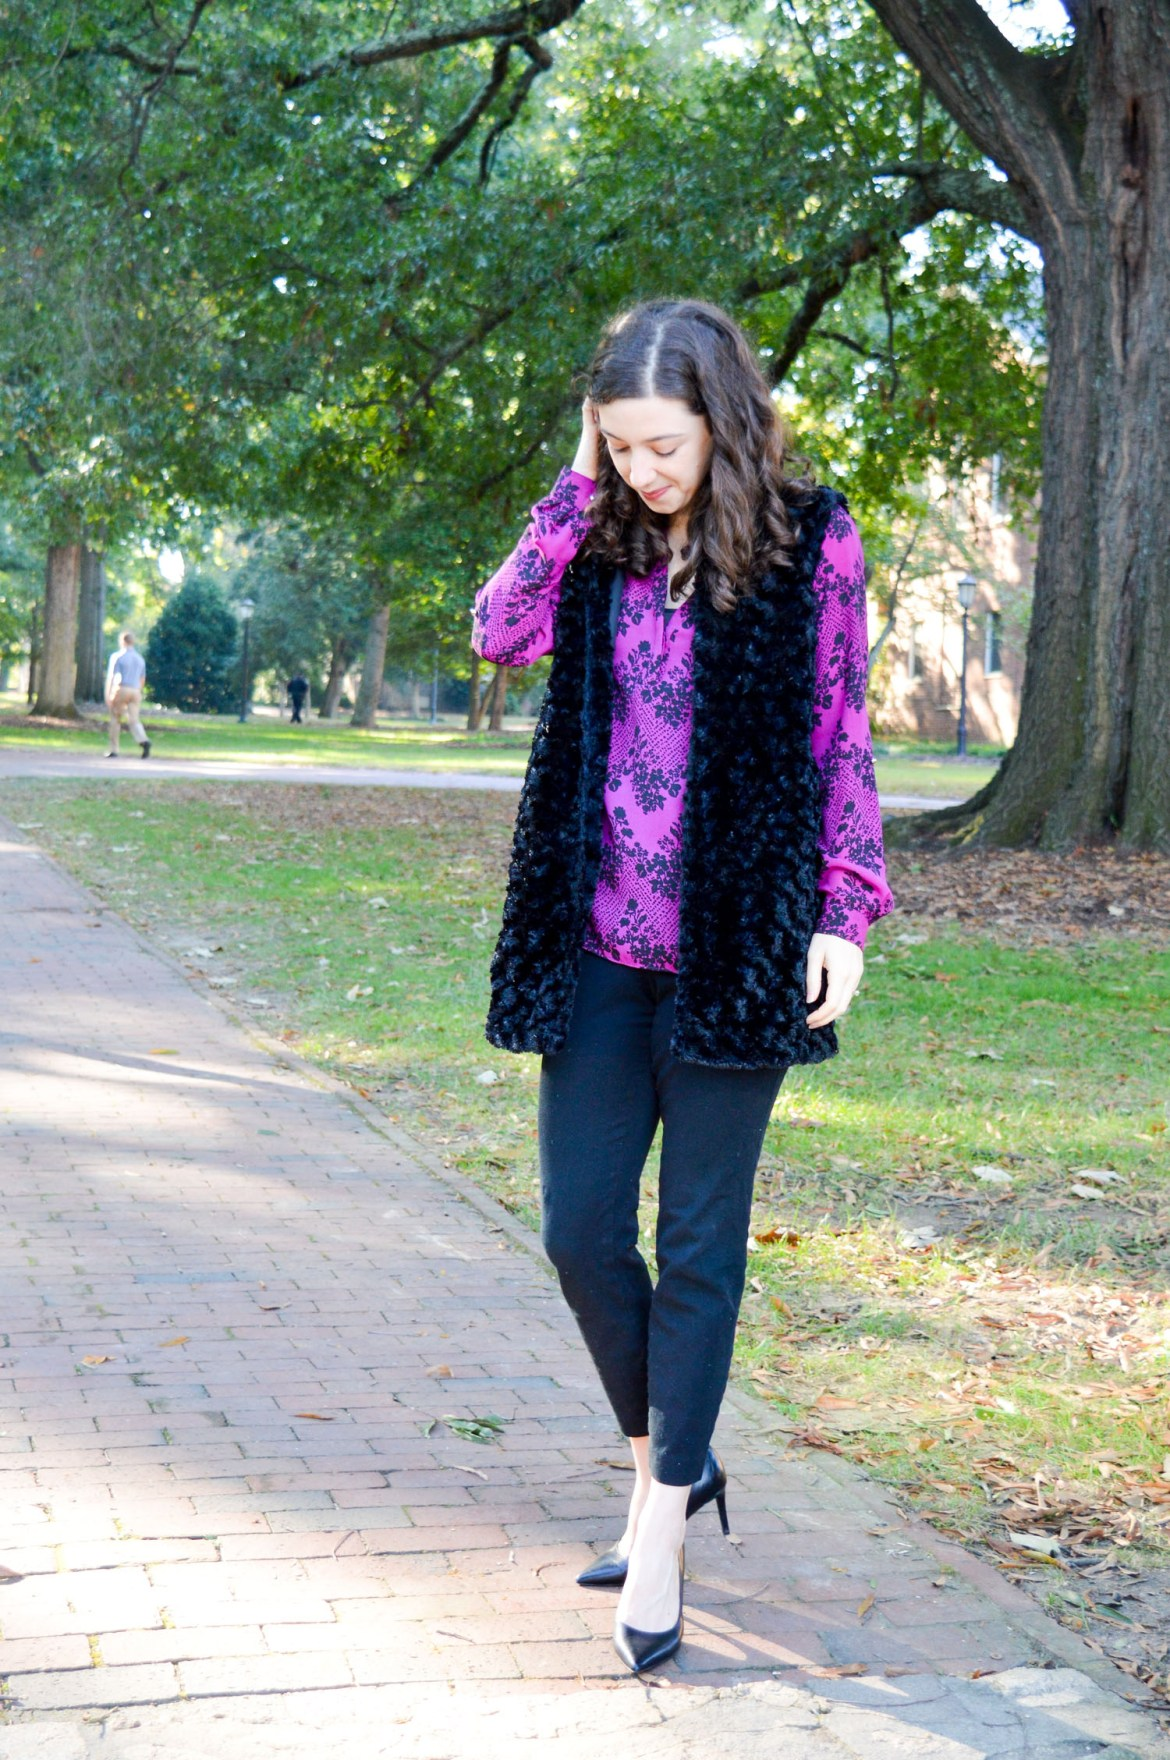 How to wear your fur vest to work